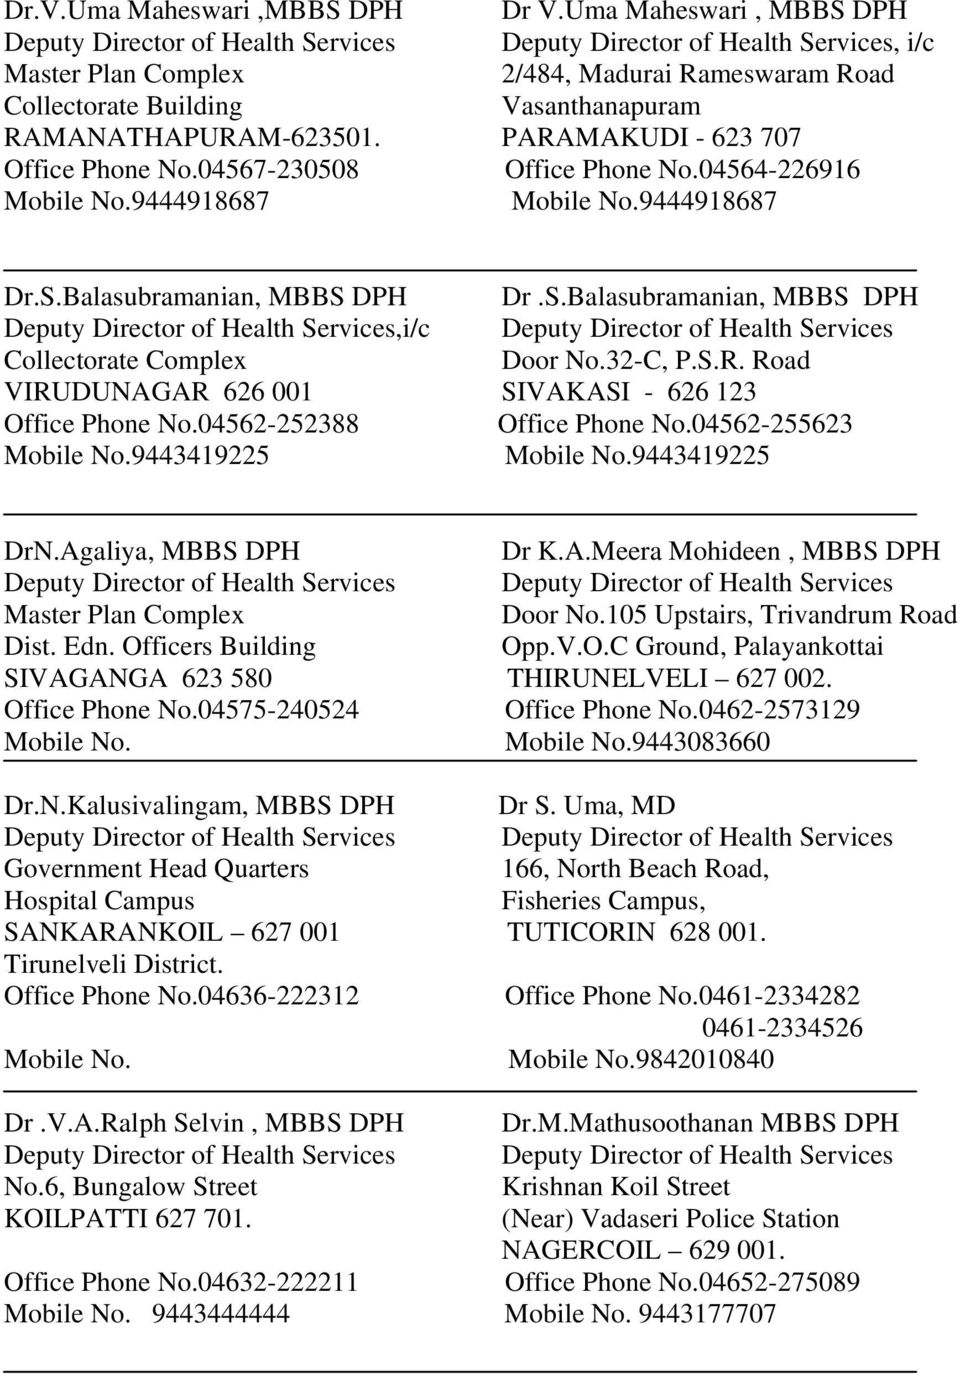 List of Deputy Directors of Health Services - PDF